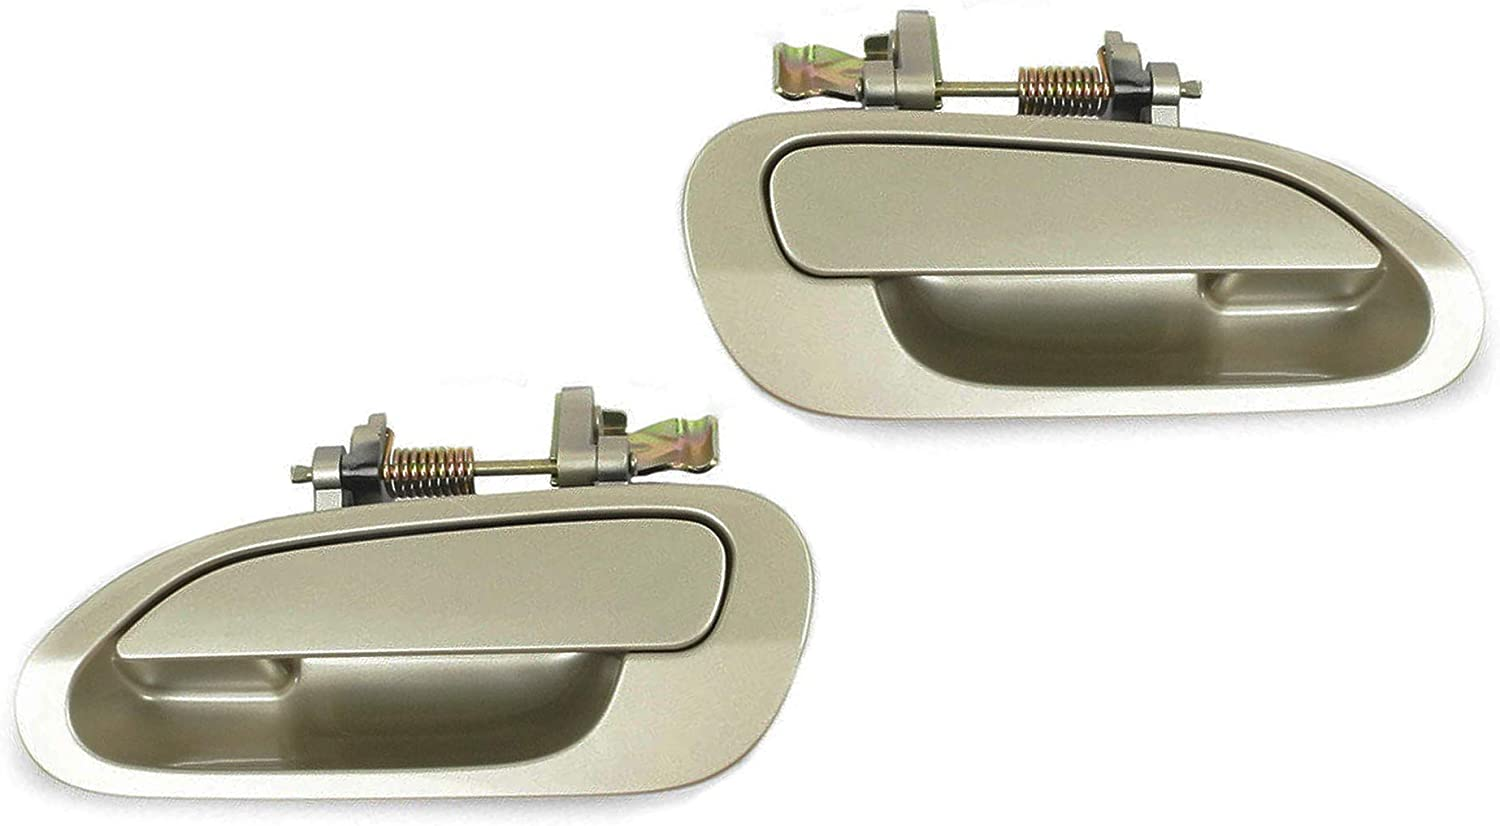 Front L Outside Door Handle For 98-02 Honda Accord YR508M Heather Mist Metallic